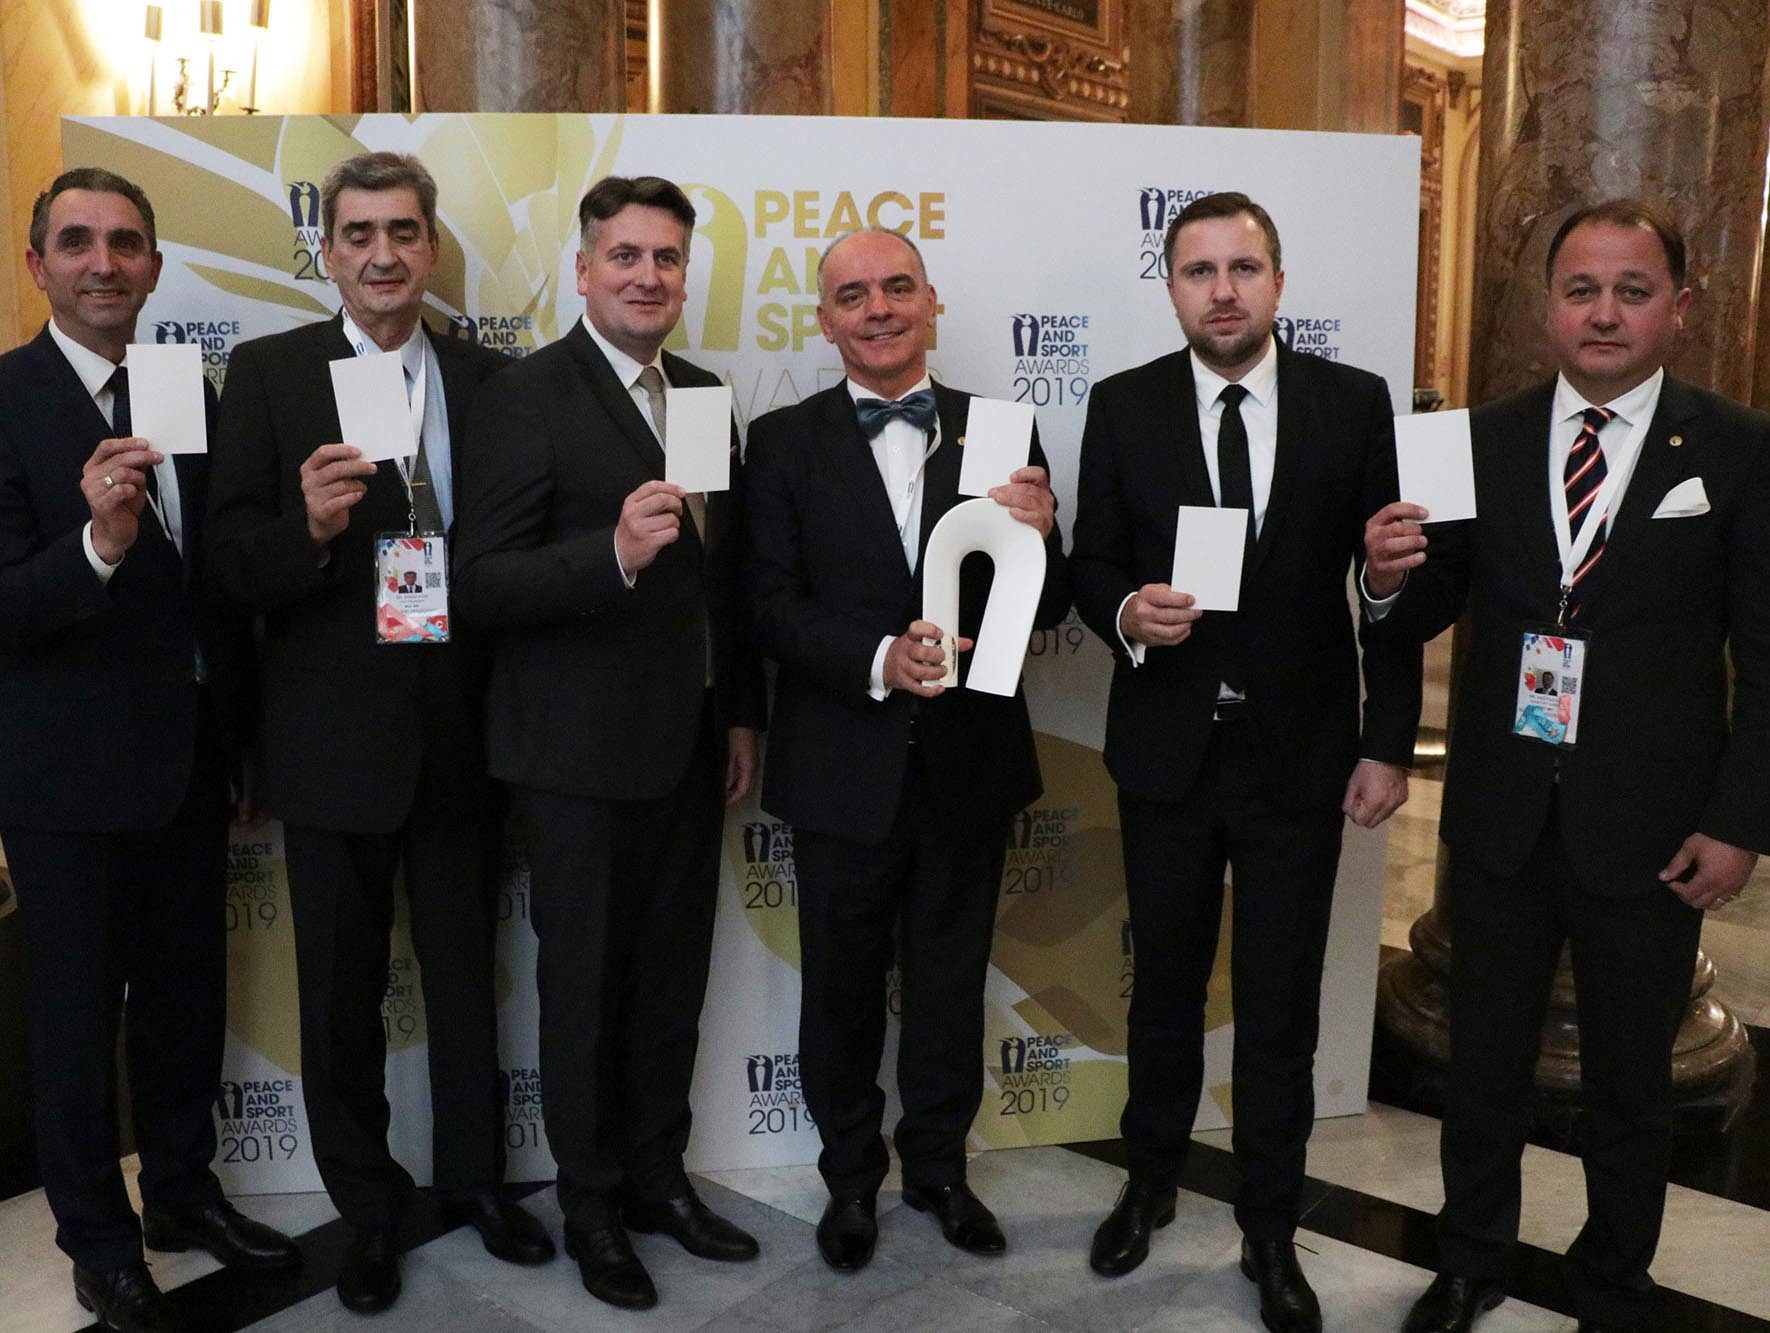 The Olympic Committee of Bosnia and Herzegovina and the cities of Sarajevo and East Sarajevo won Peace and Sport's diplomatic action of the year award ©Twitter